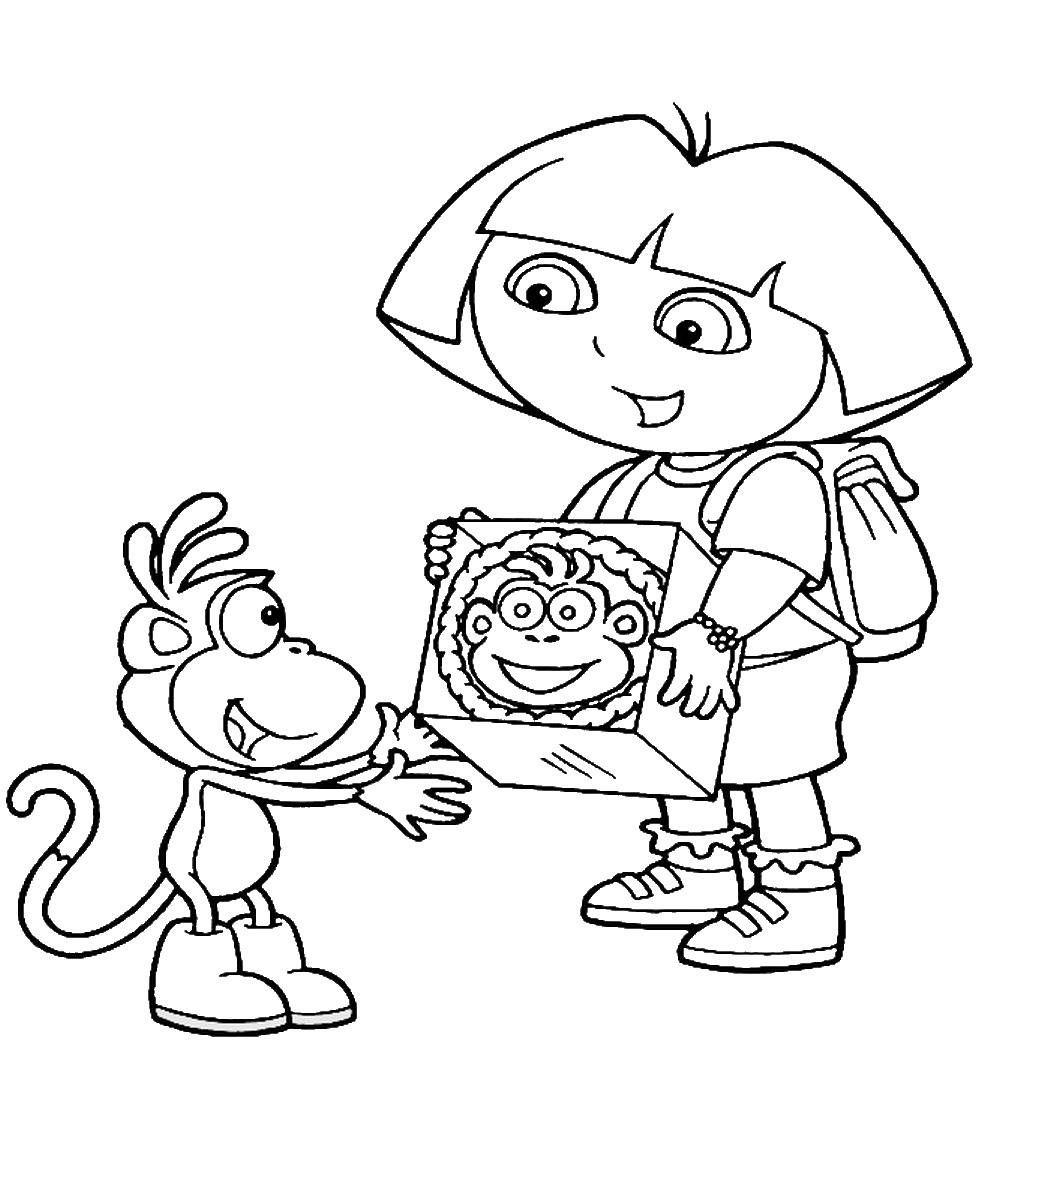 dora coloring dora the explorer coloring pages coloring dora